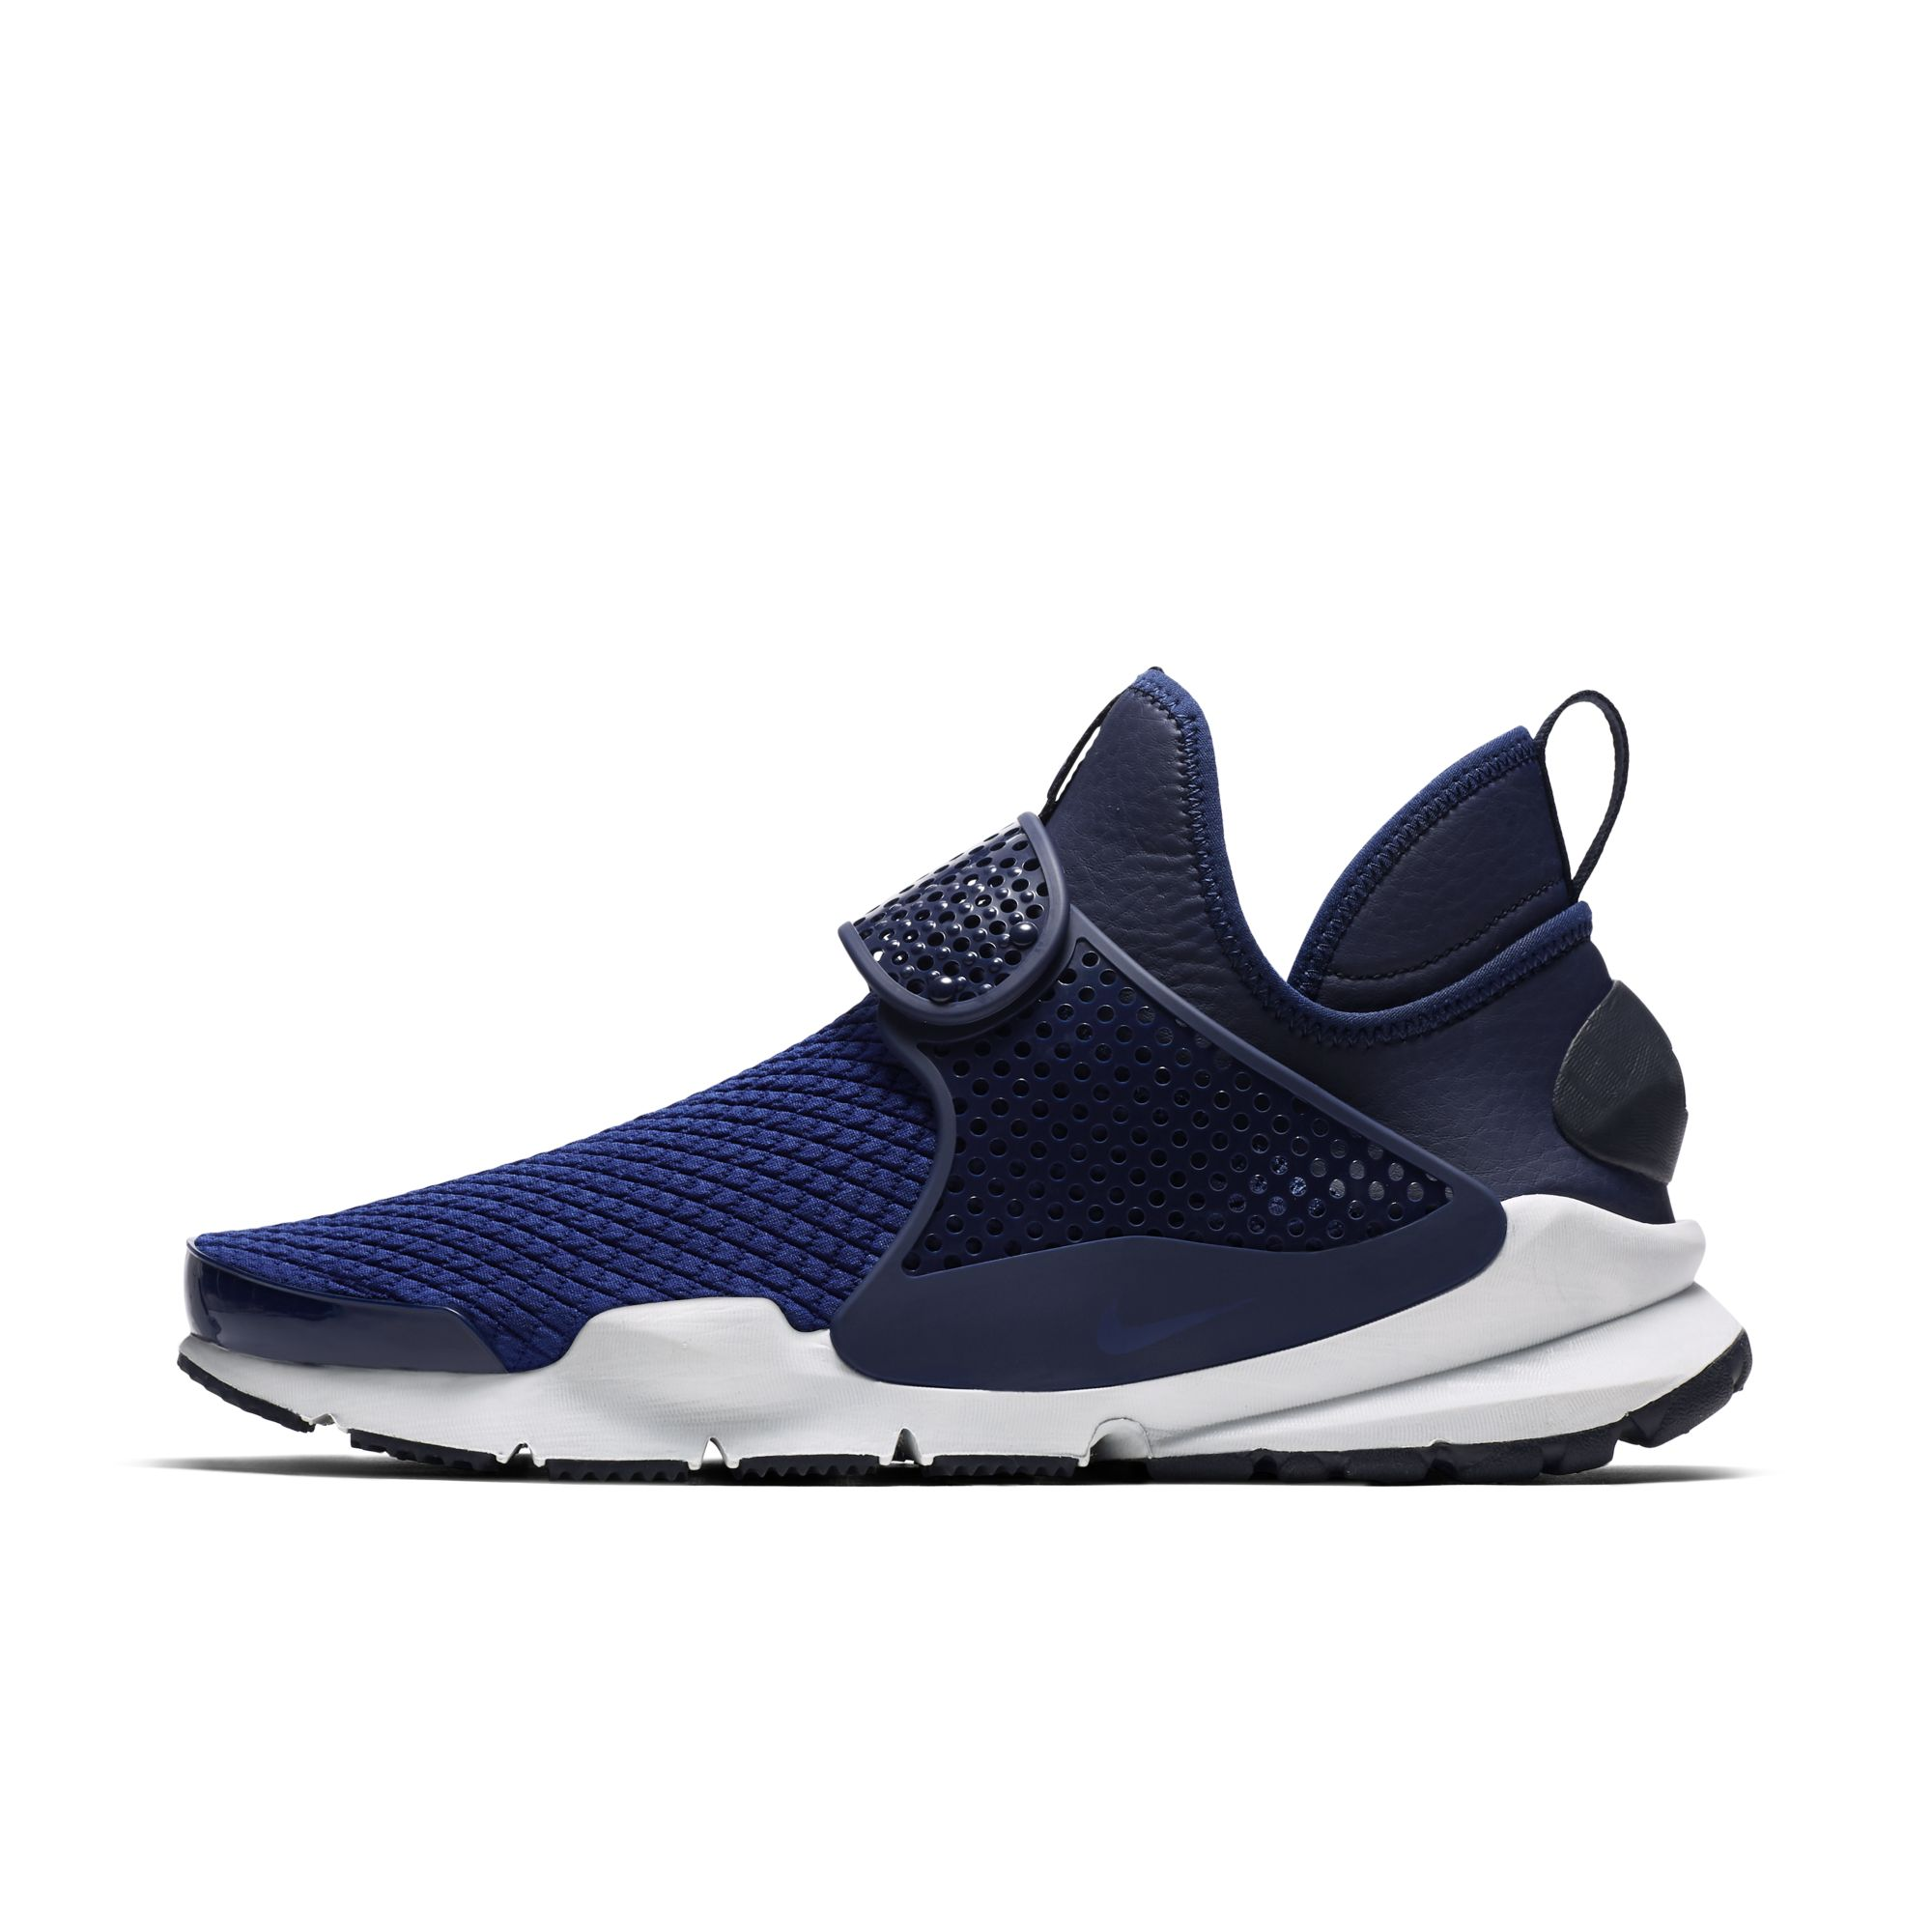 43a1cd79bb1 The Nike Sock Dart Mid is Now a Thing - WearTesters